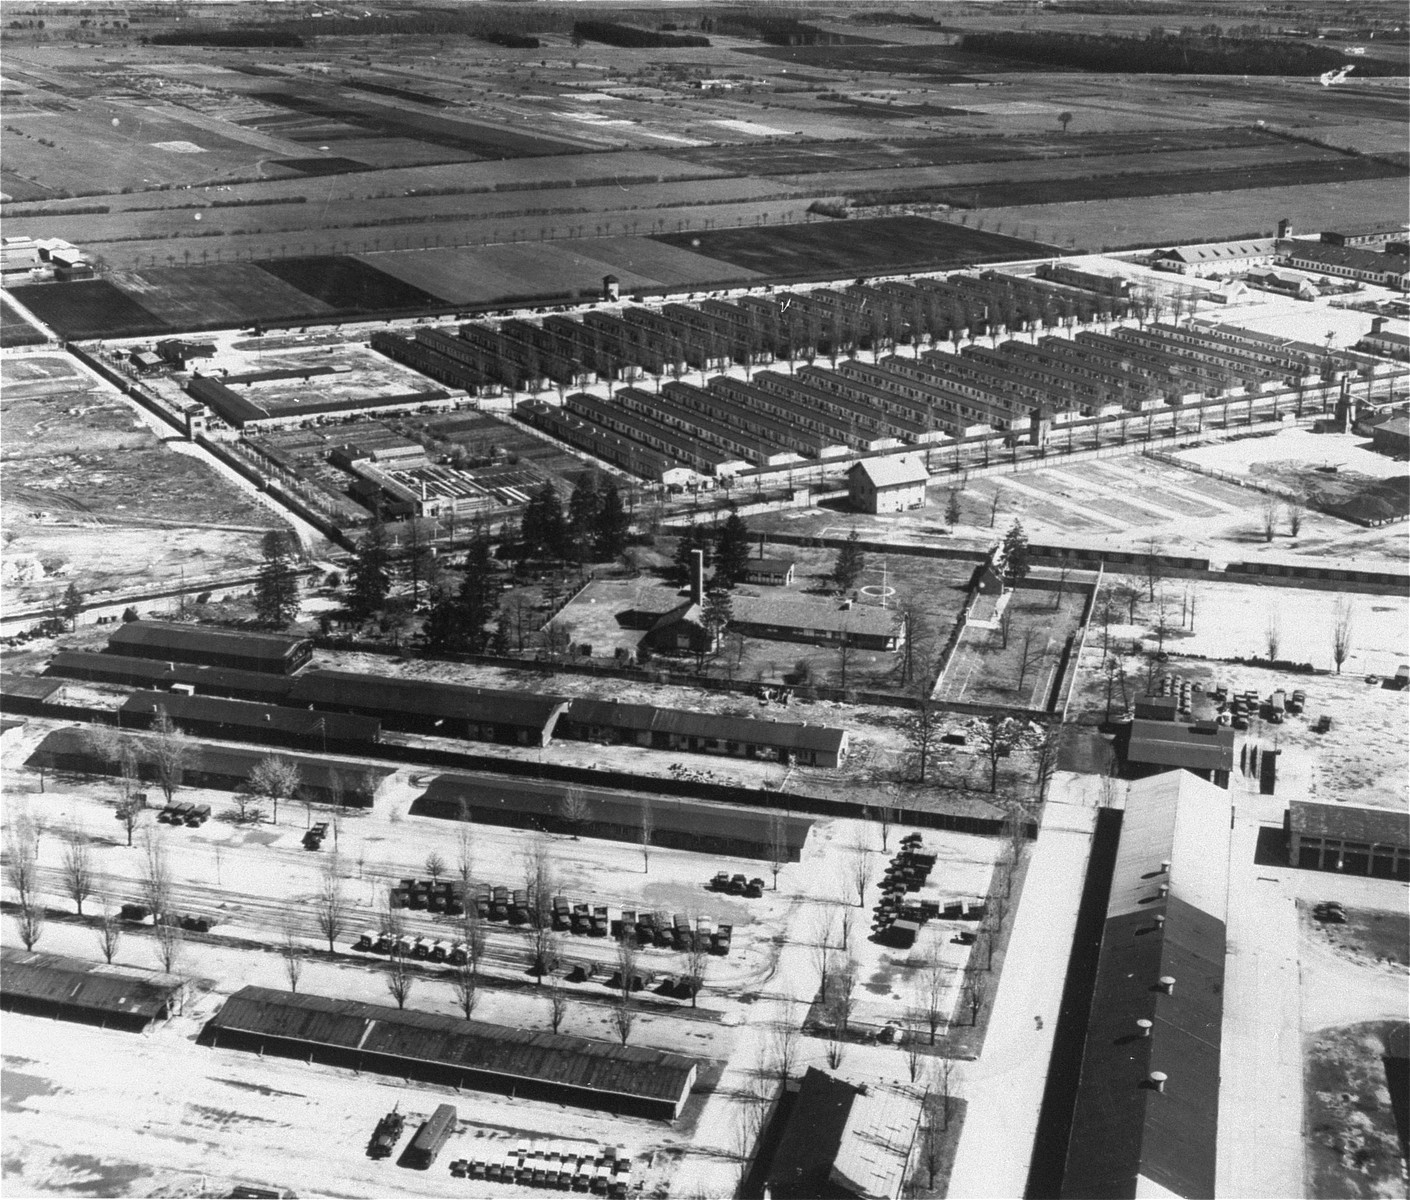 Aerial view of Dachau main camp